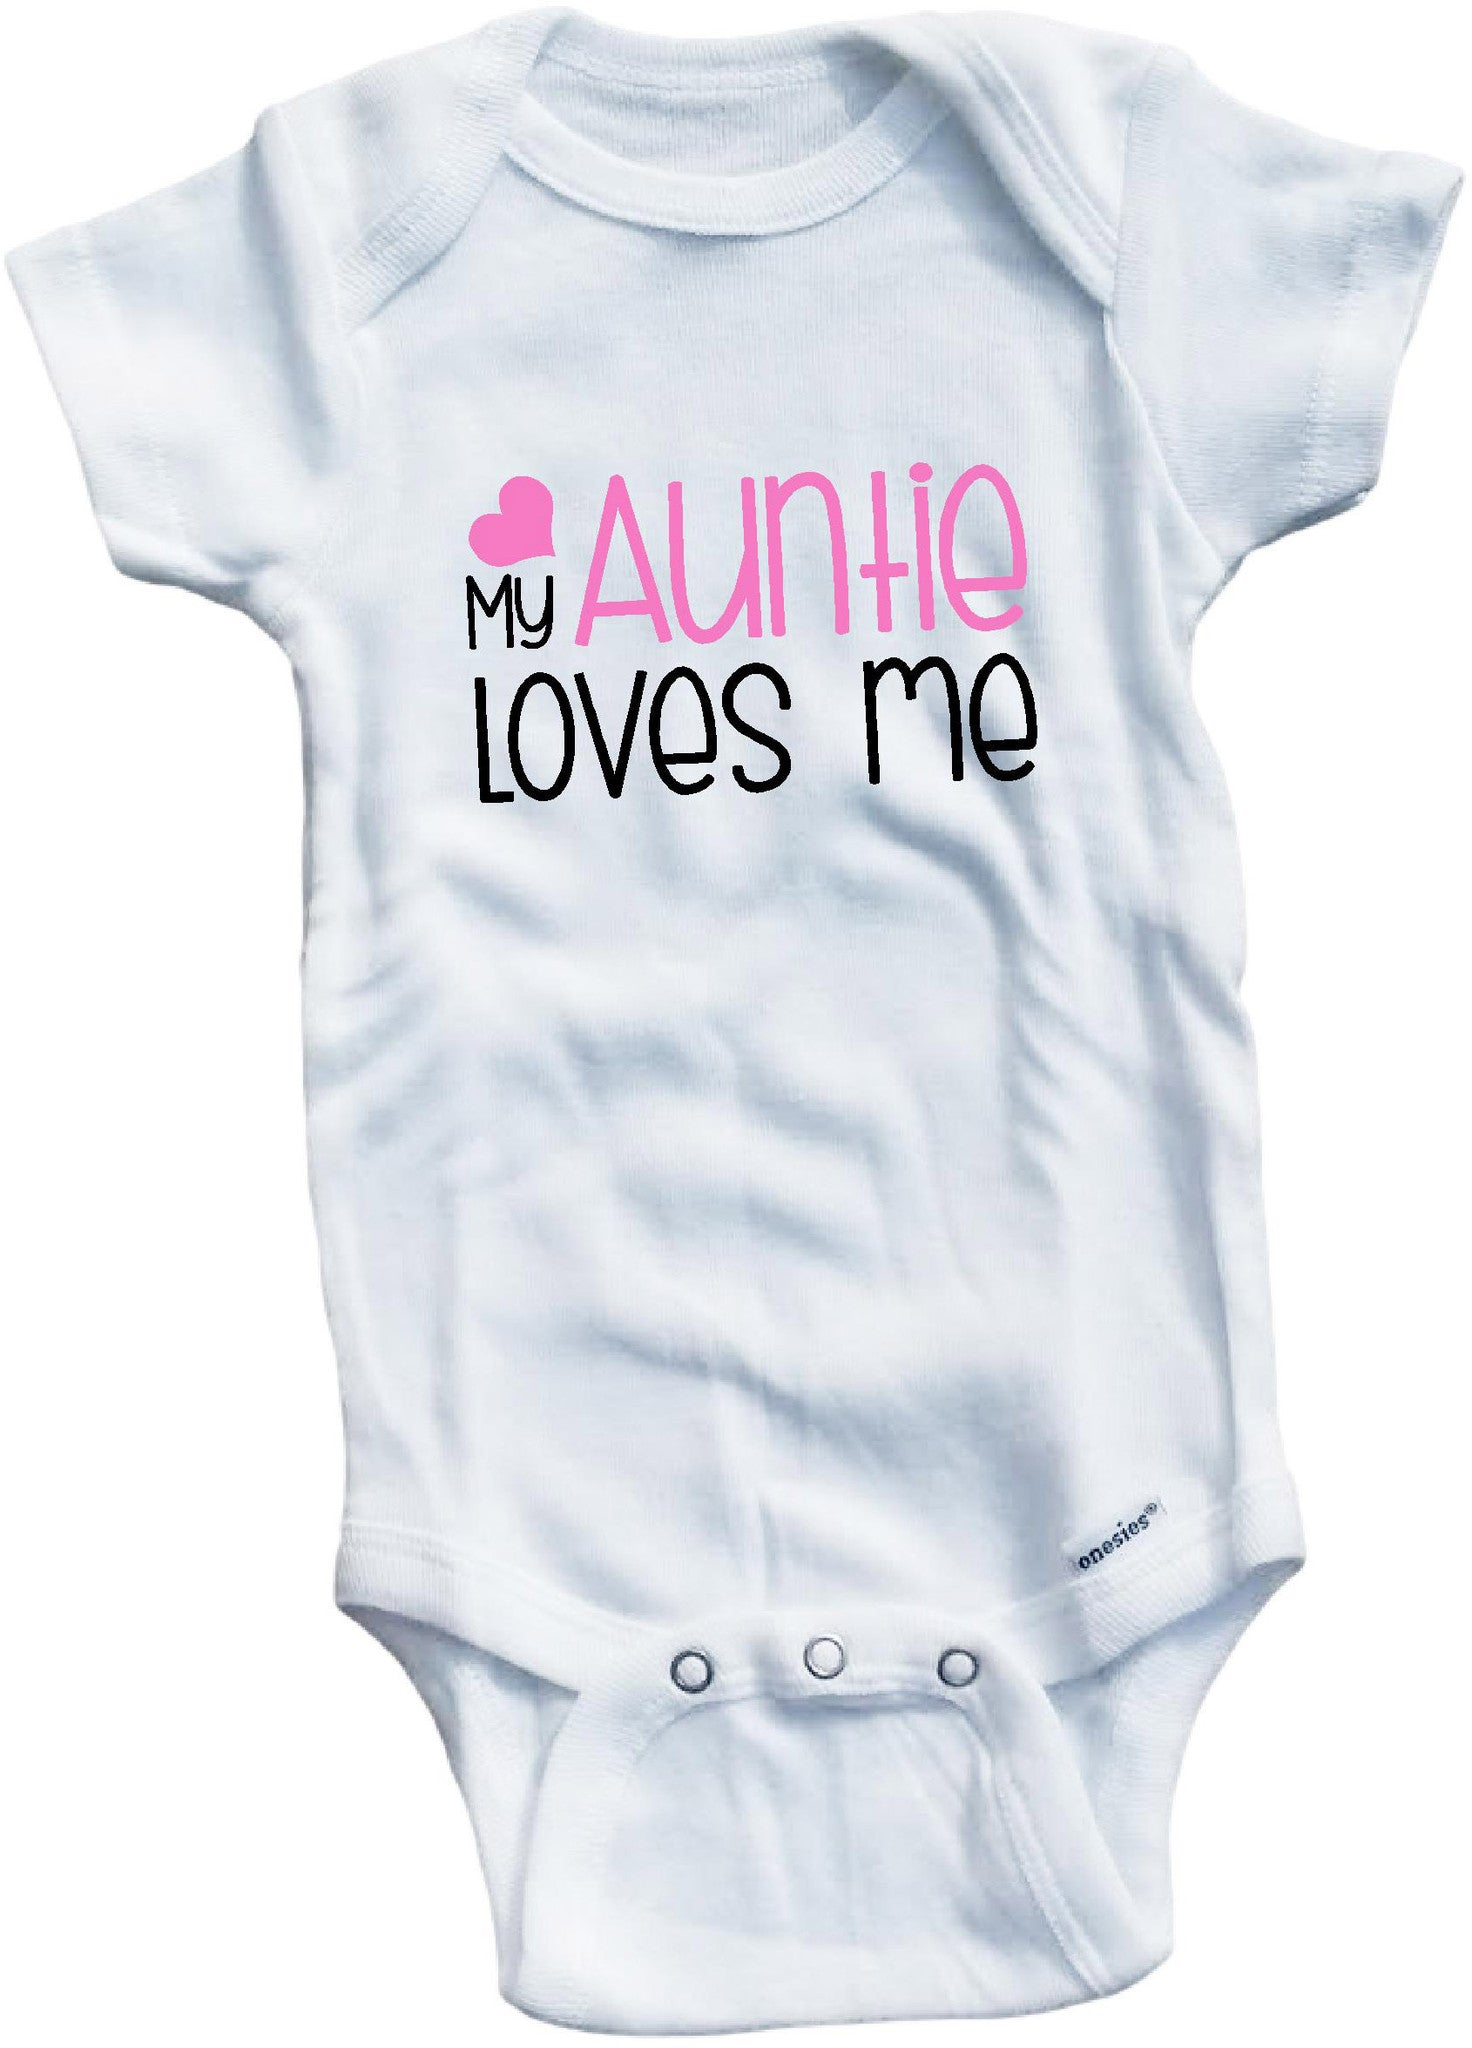 502cadb47 My Auntie loves me cute infant clothing funny baby clothes bodysuit on –  Baby Tee Time